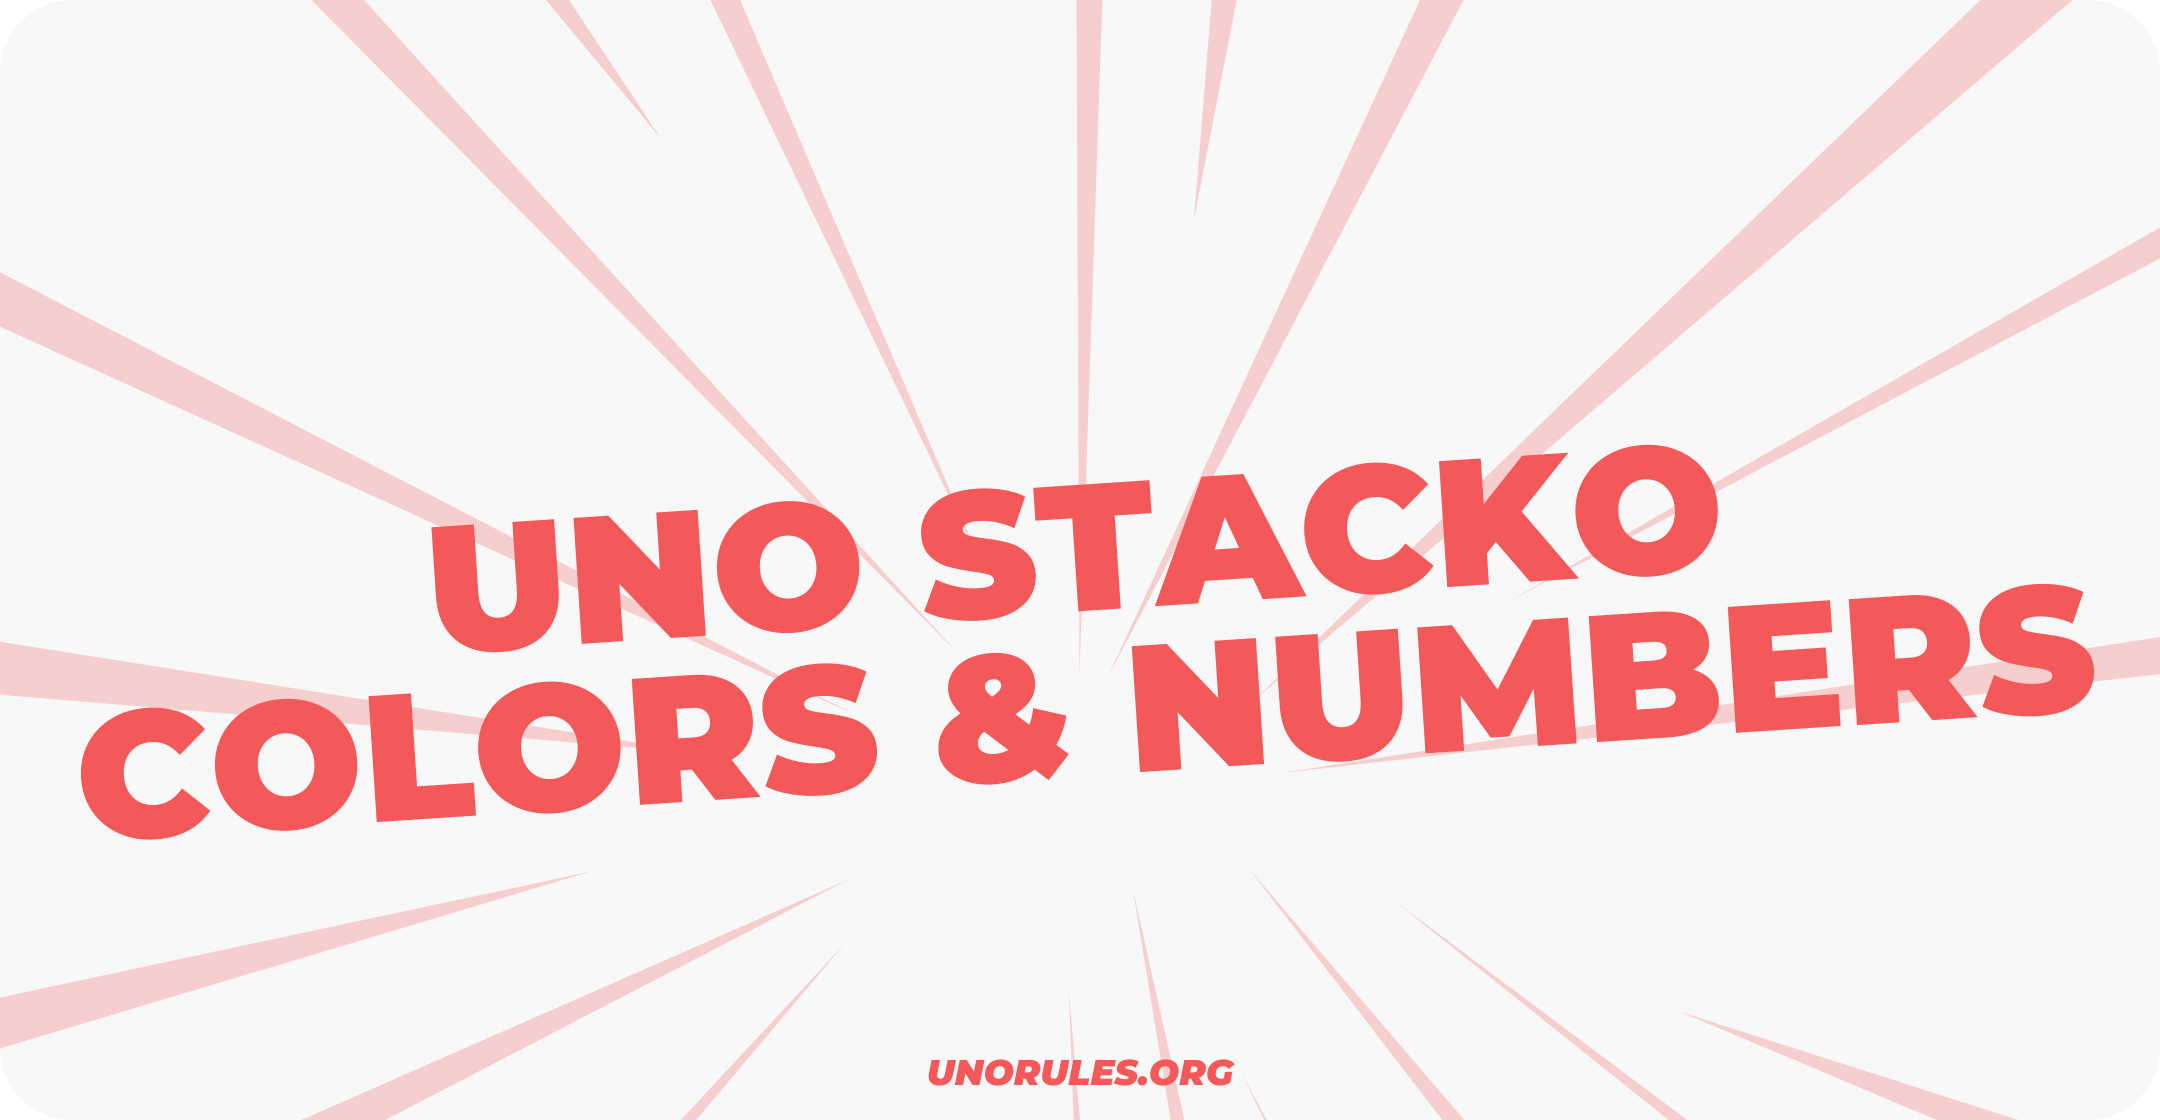 Uno Stacko colors and numbers